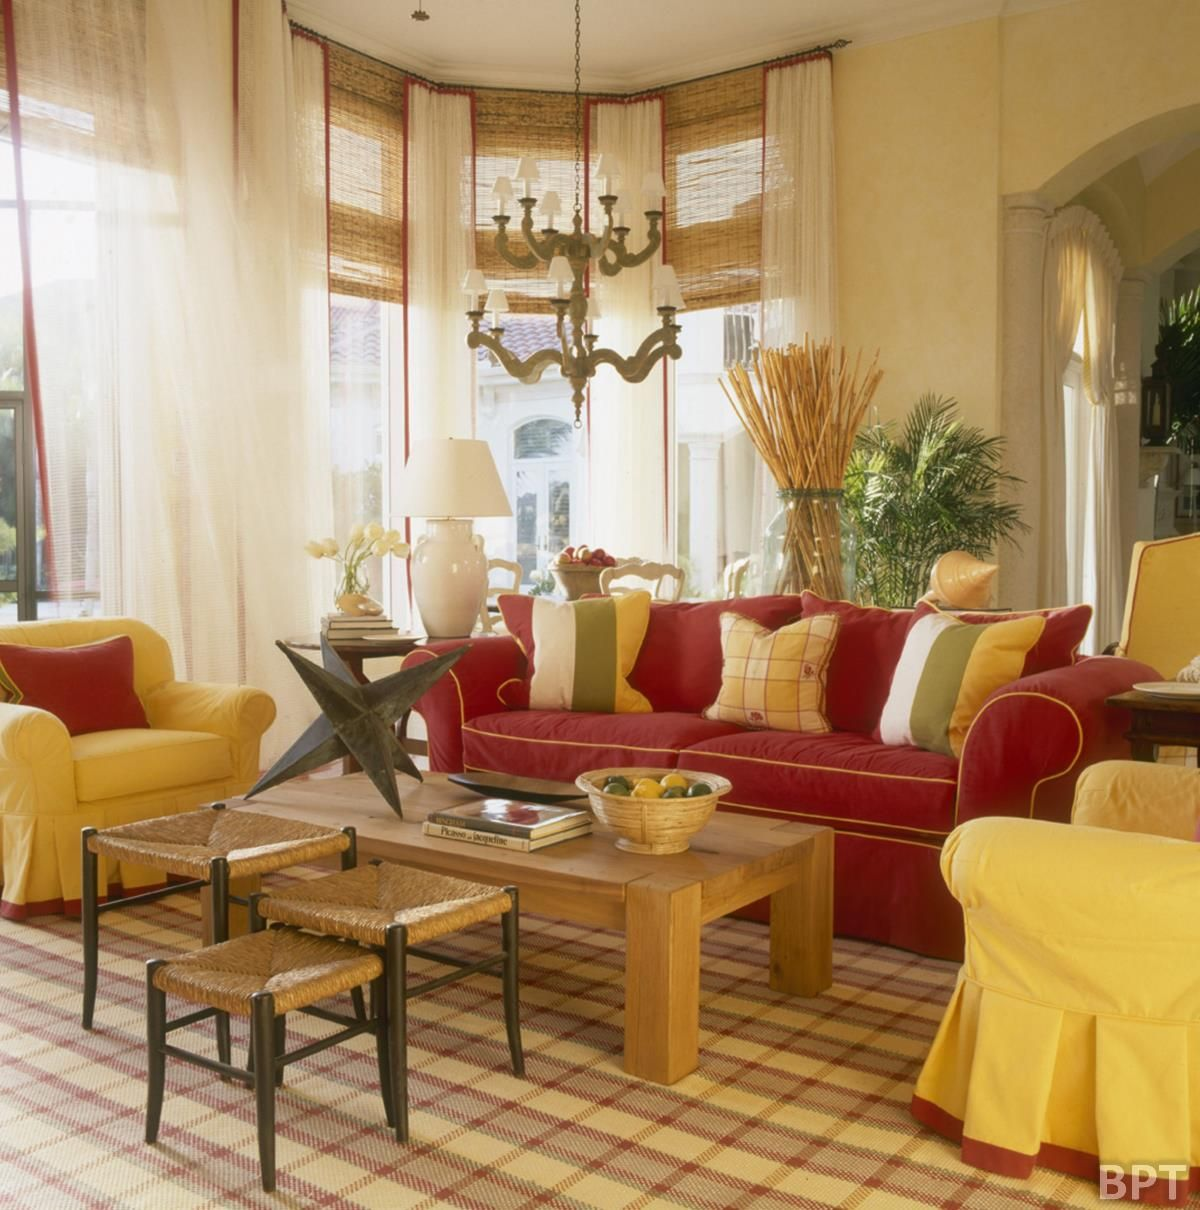 Classic interior living room design with yellow and red Red sofa ideas